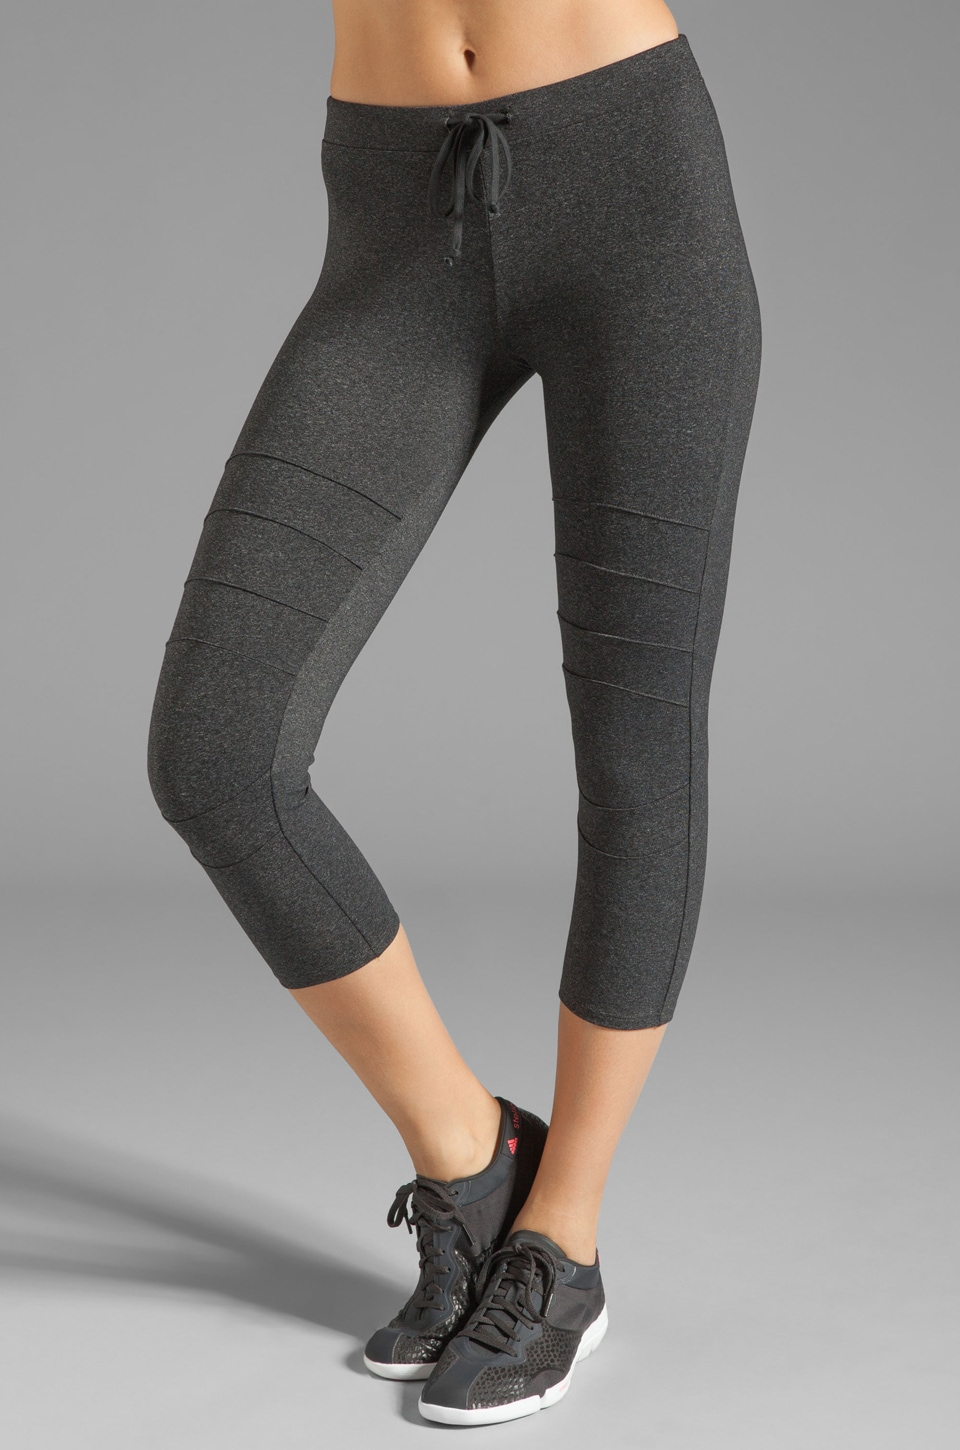 SOLOW Eclon Moto Crop Running Pant in Heather Charcoal